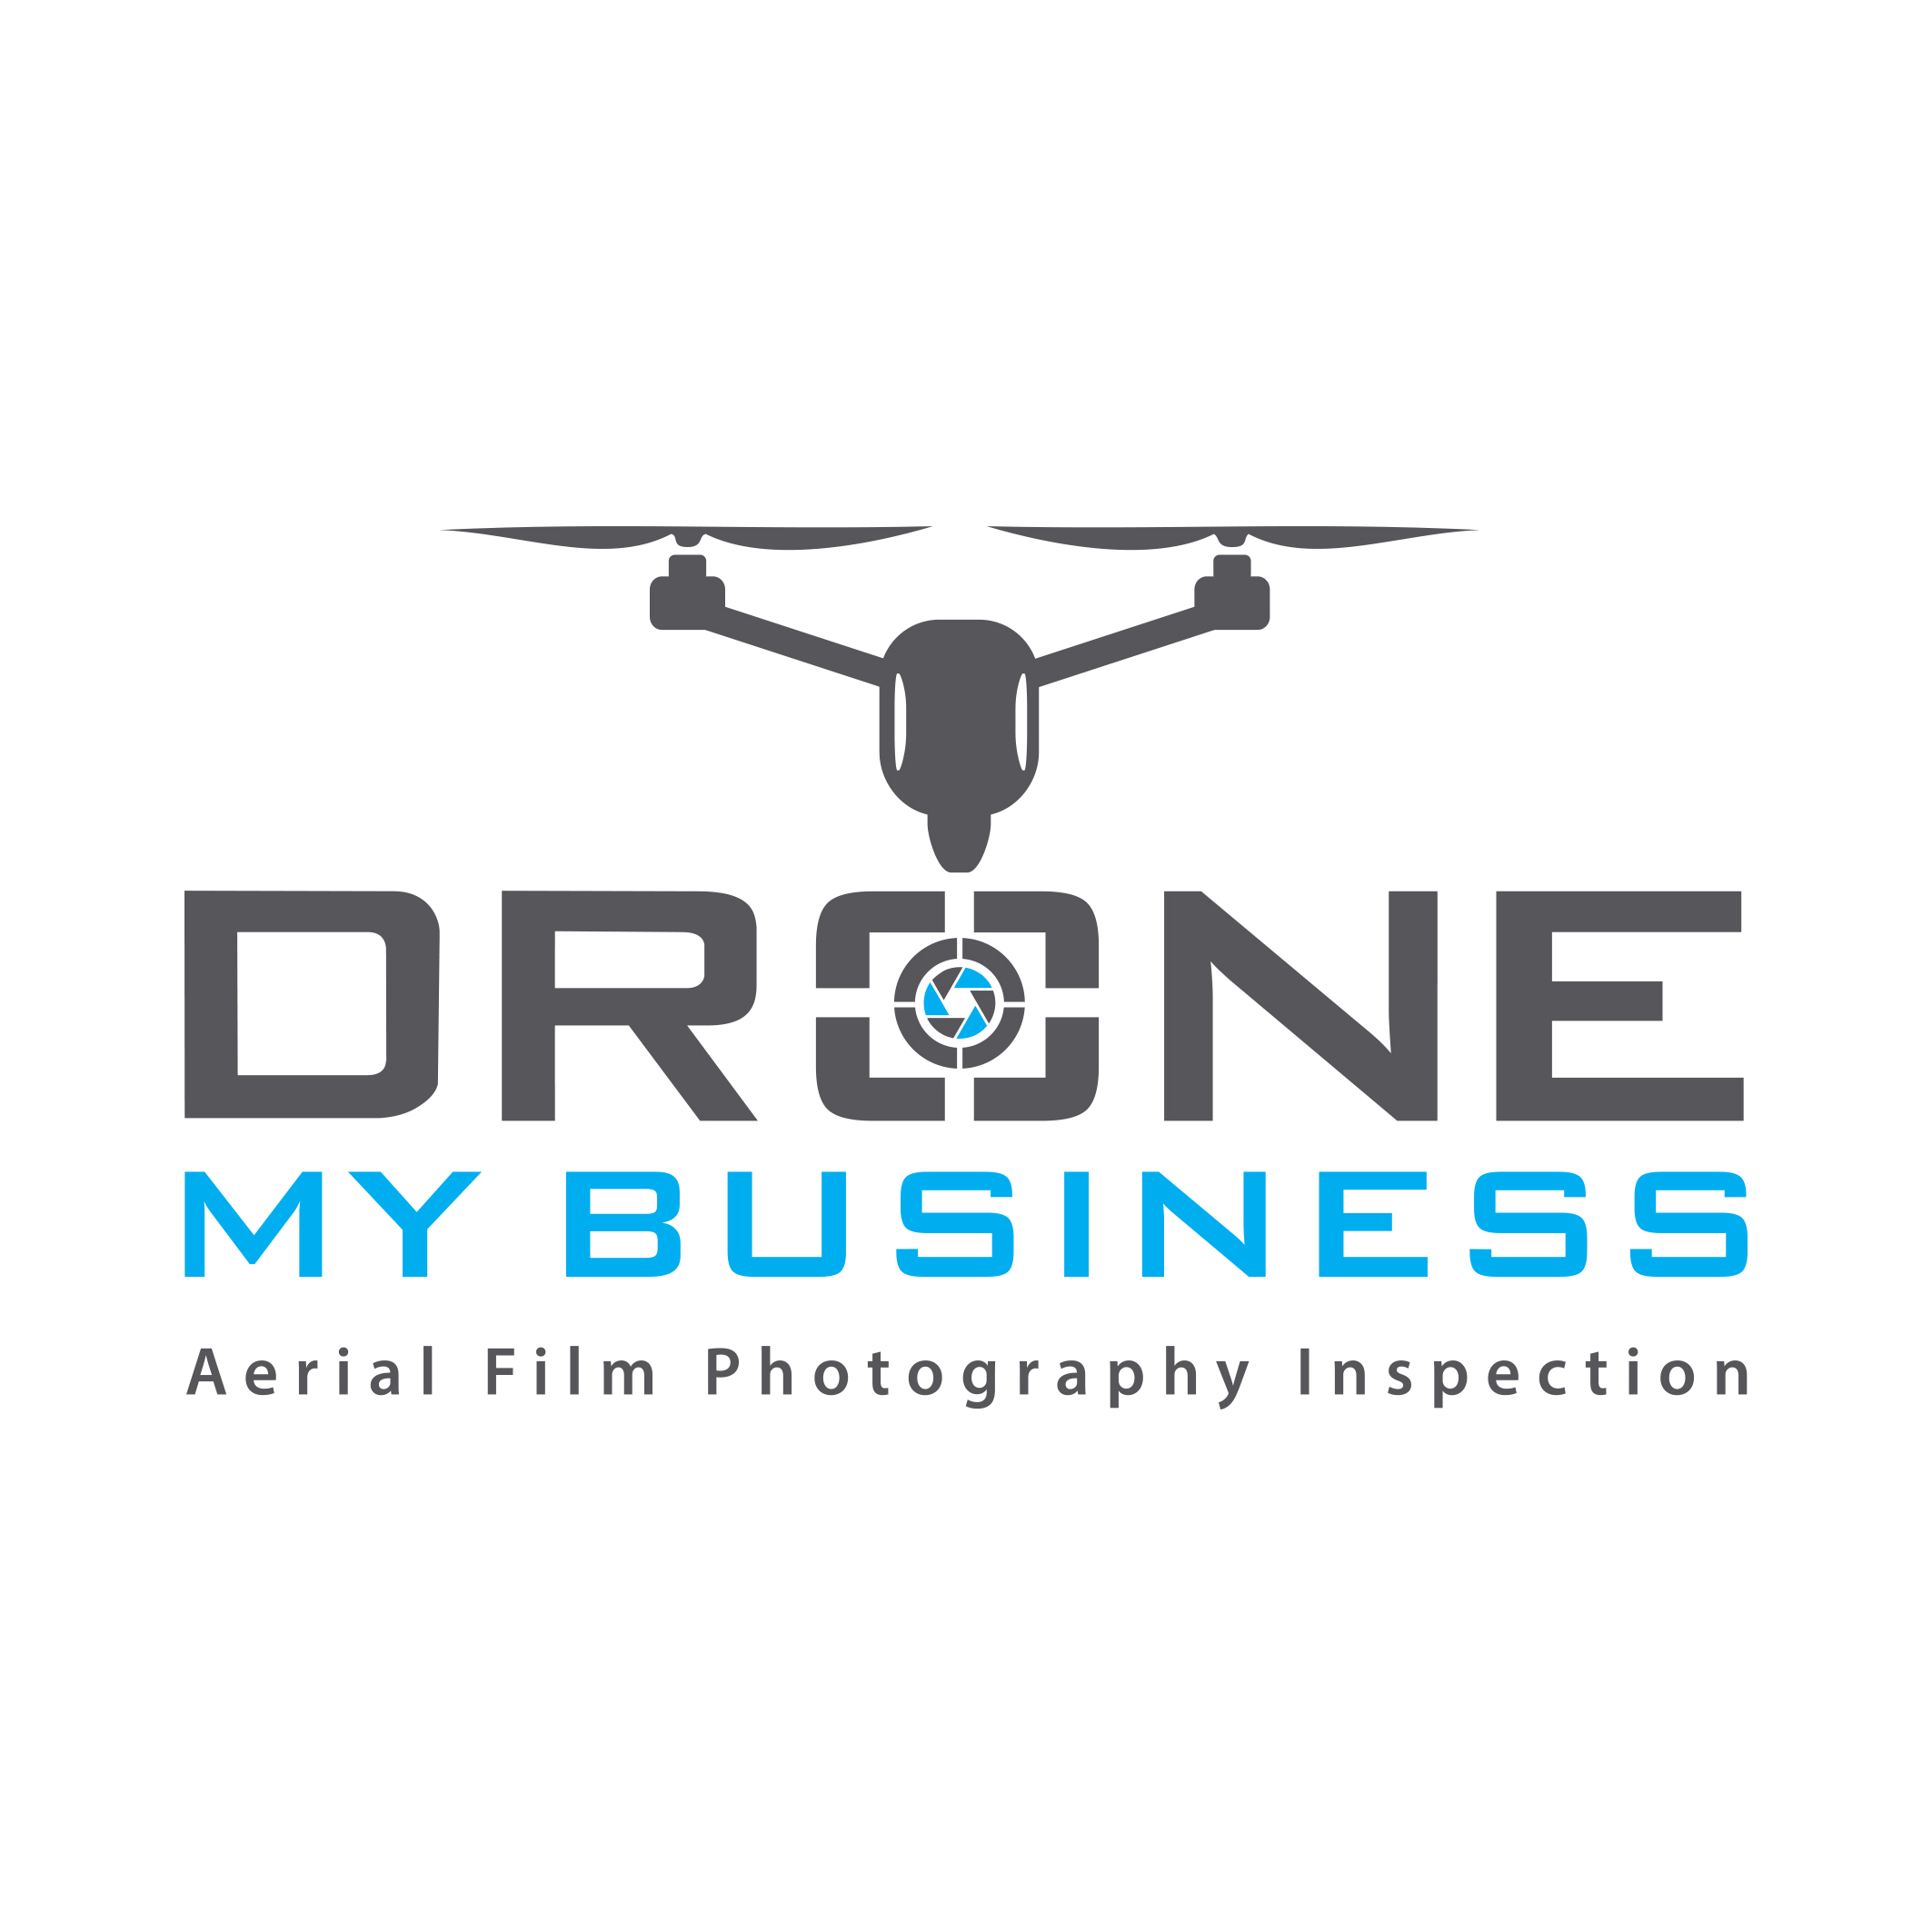 Drone My Business Ltd